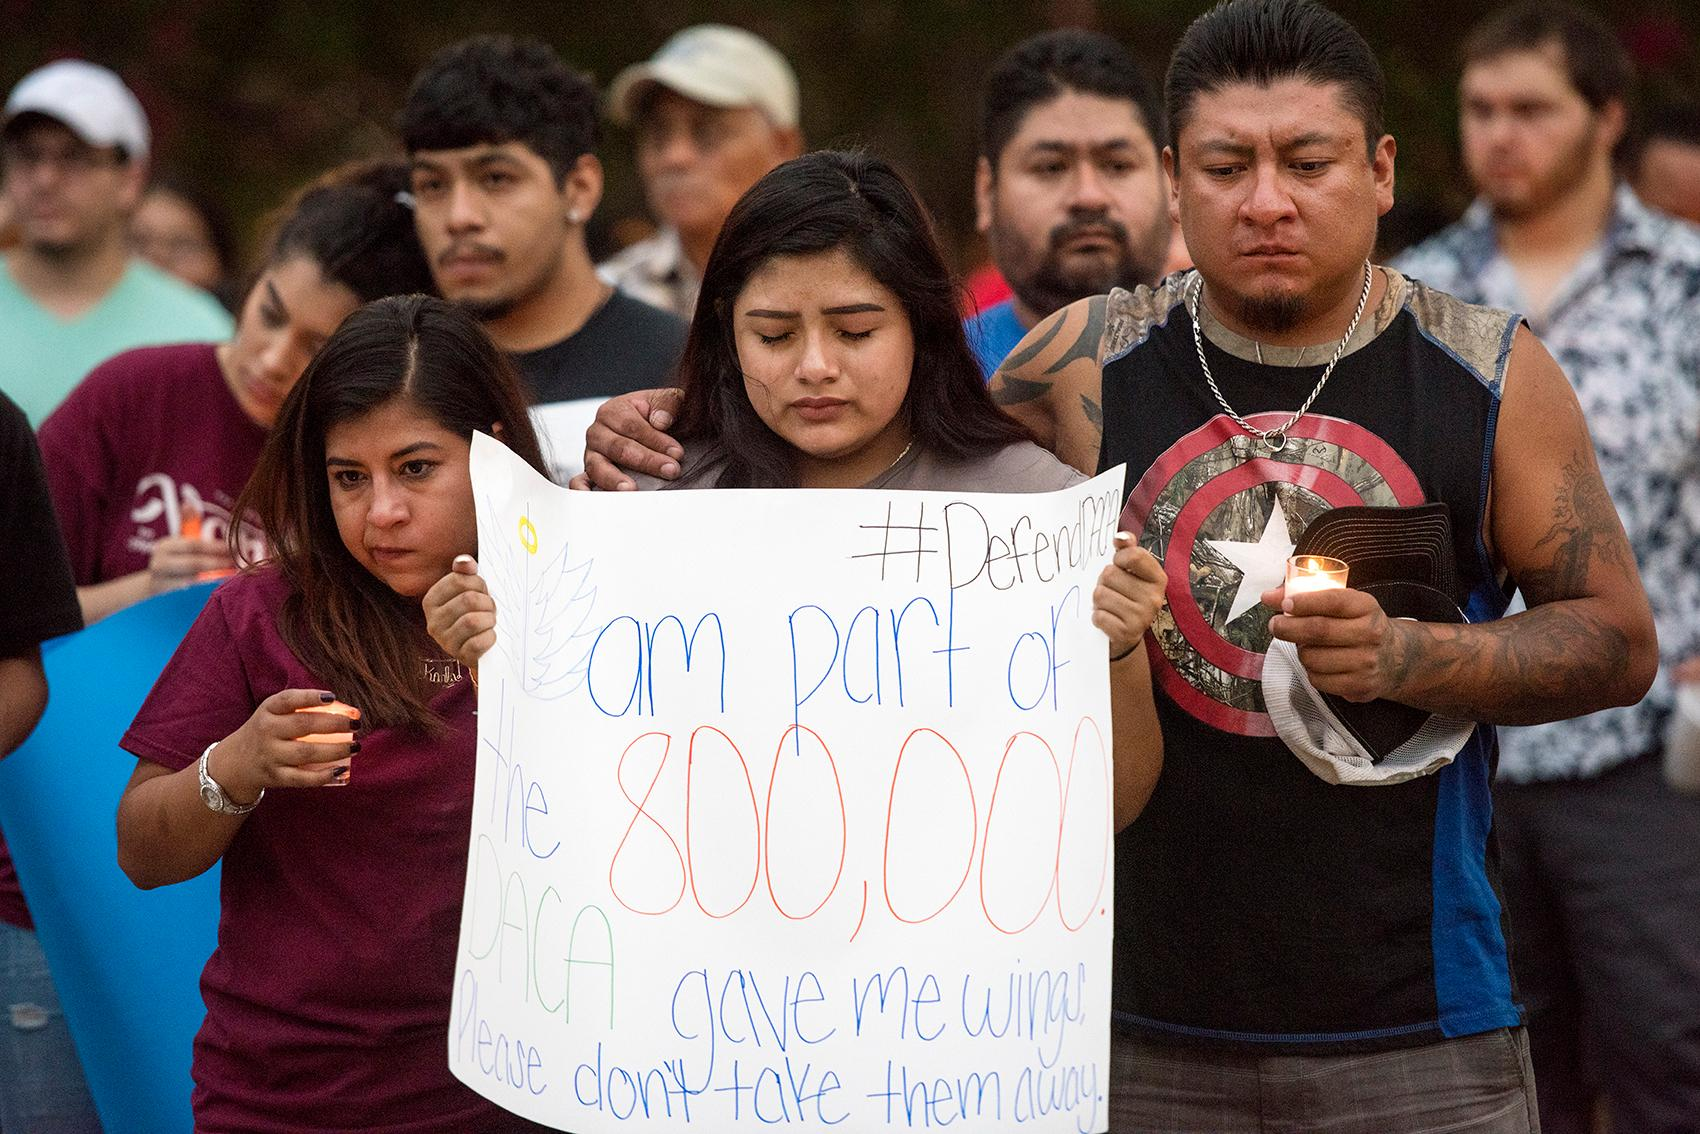 FILE - In this Sept. 5, 2017 file photo, Robert E. Lee student Karina Fraga, a DACA recipient, closes her eyes in prayer as she holds a sign during a silent vigil in honor of Deferred Action for Childhood Arrivals (DACA) at T.B. Butler Fountain Plaza in Tyler, Texas. Young immigrants in Houston and Miami are scrambling to complete their renewal applications for a program shielding them from deportation while dealing with hurricanes that have hit or are bearing down on their states. An Oct. 5 deadline was announced this week by the Trump administration. It set off an immediate scramble among many of the nearly 800,000 people protected by the DACA program, most notably in Texas and Florida. (Chelsea Purgahn/Tyler Morning Telegraph via AP, File)